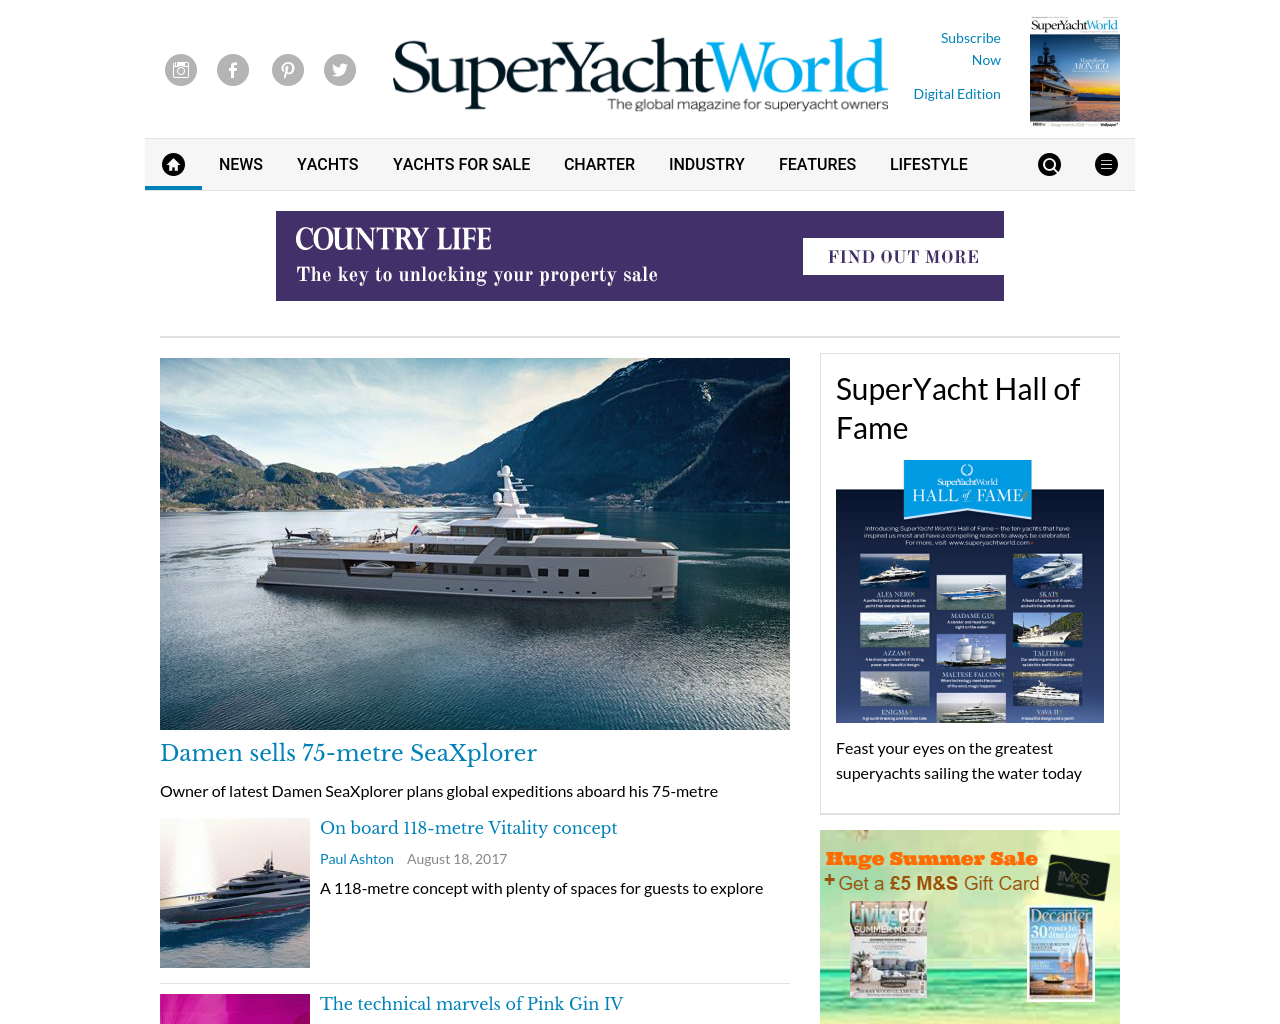 SuperYachtWorld-The-Global-Magazine-For-Superyacht-Owners-Advertising-Reviews-Pricing